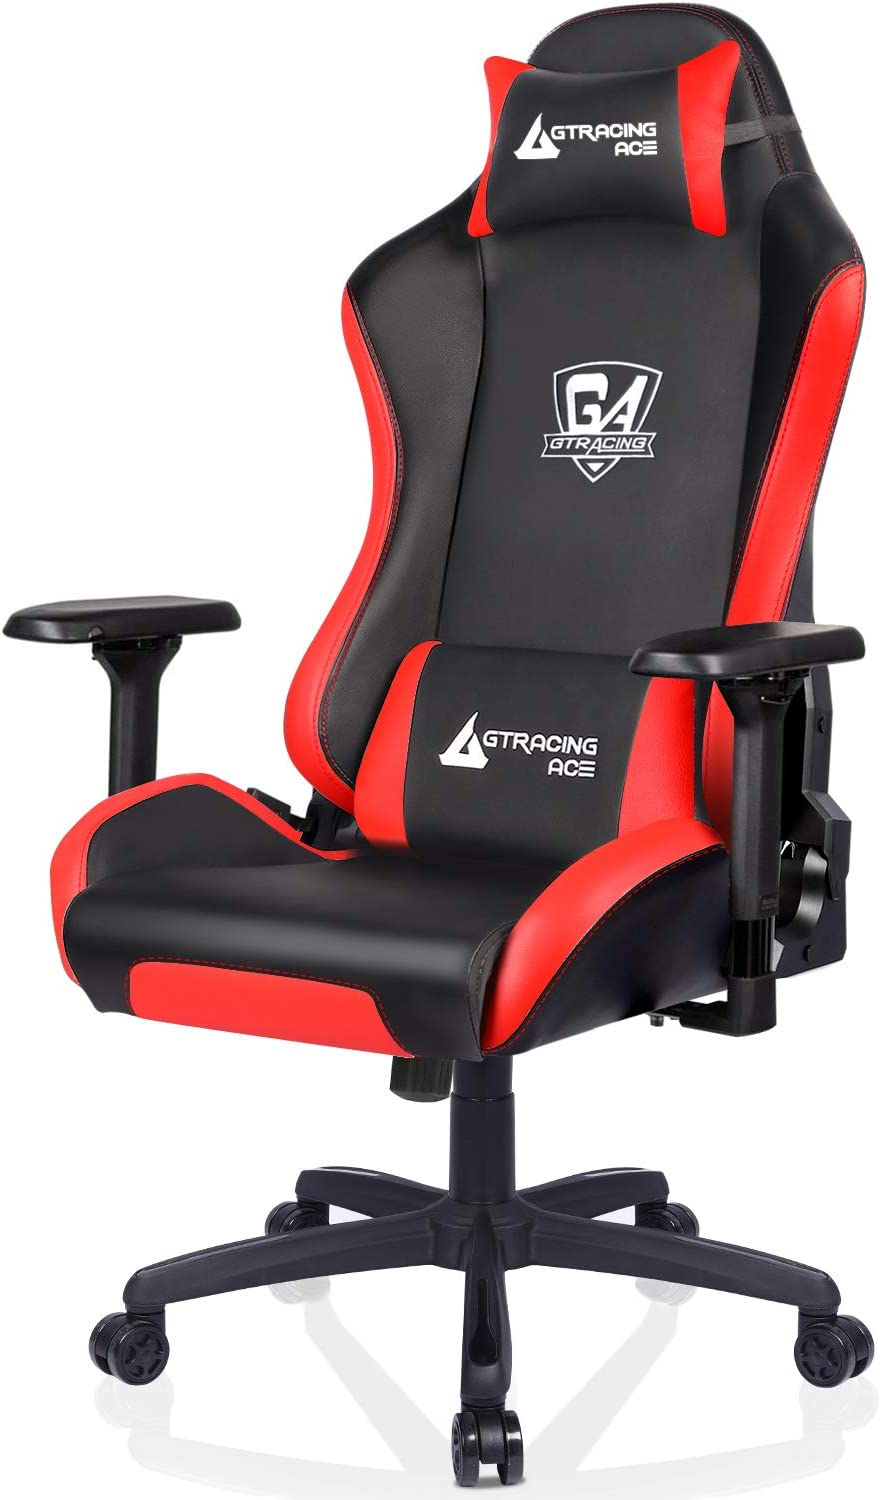 61mkIh3ZsBL. AC SL1500 - What Is The Best Gaming Chair For Short Person - ChairPicks